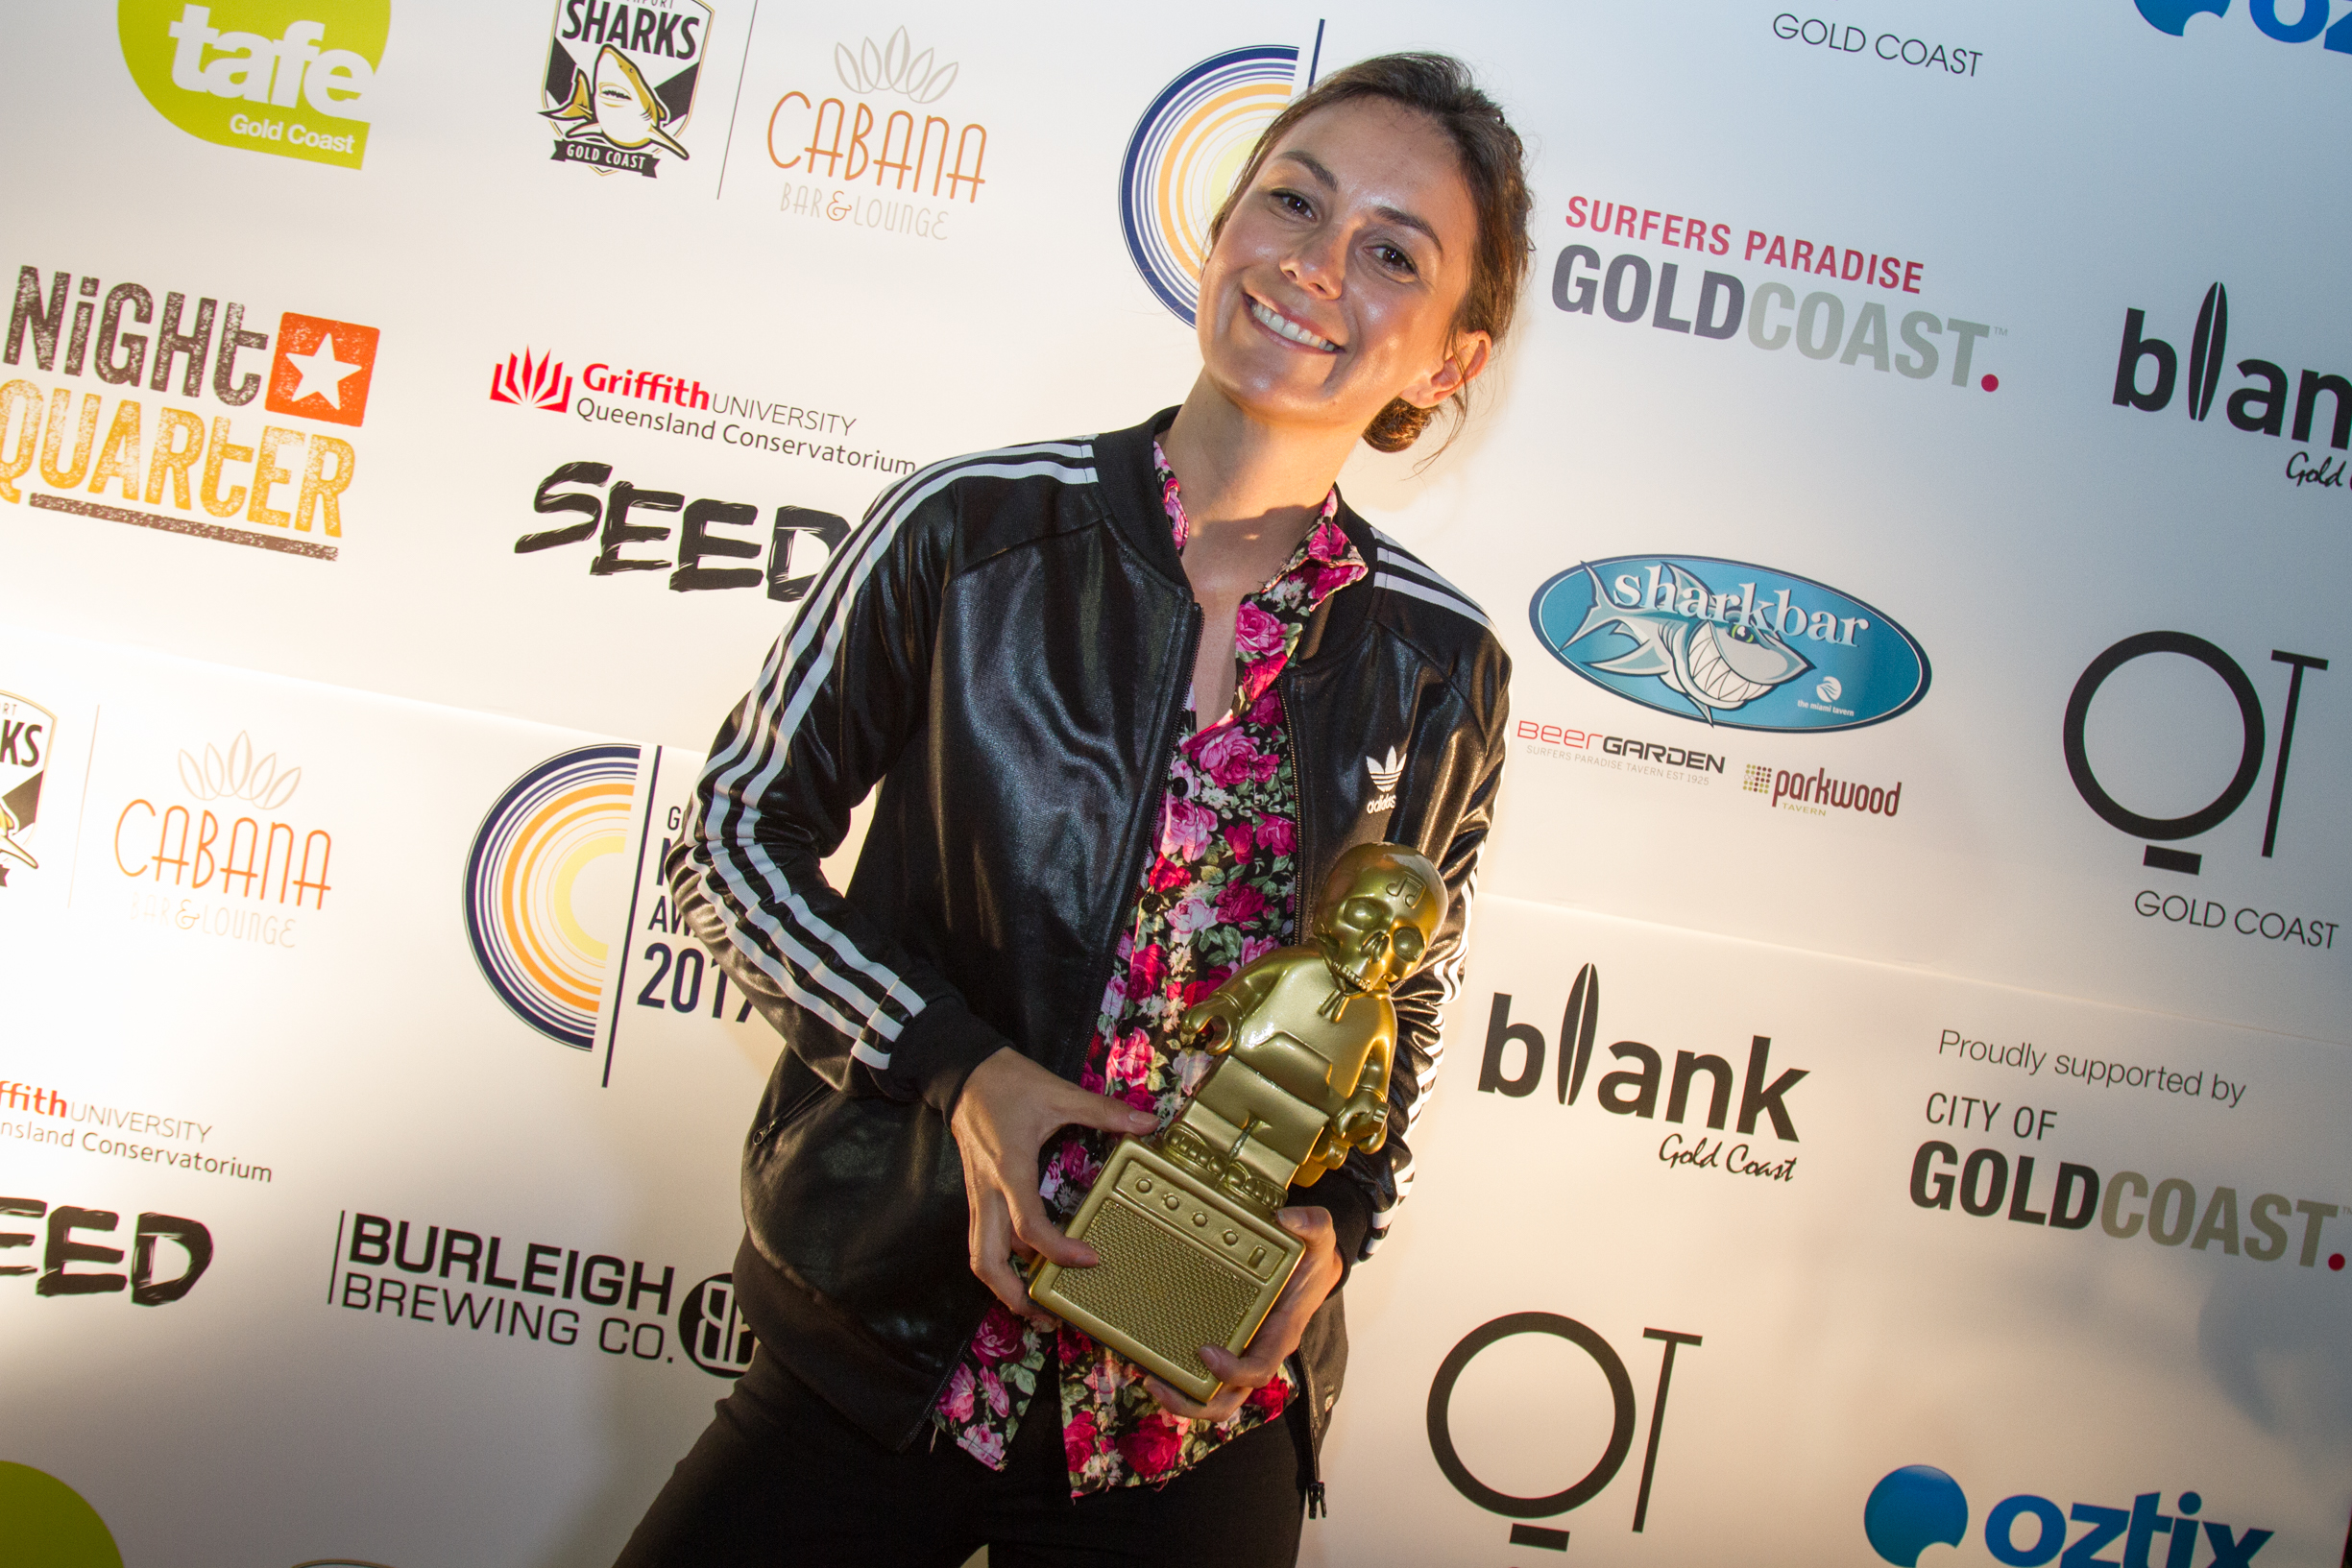 2017 'Artist Of The Year' and 'Song Of The Year', Amy Shark